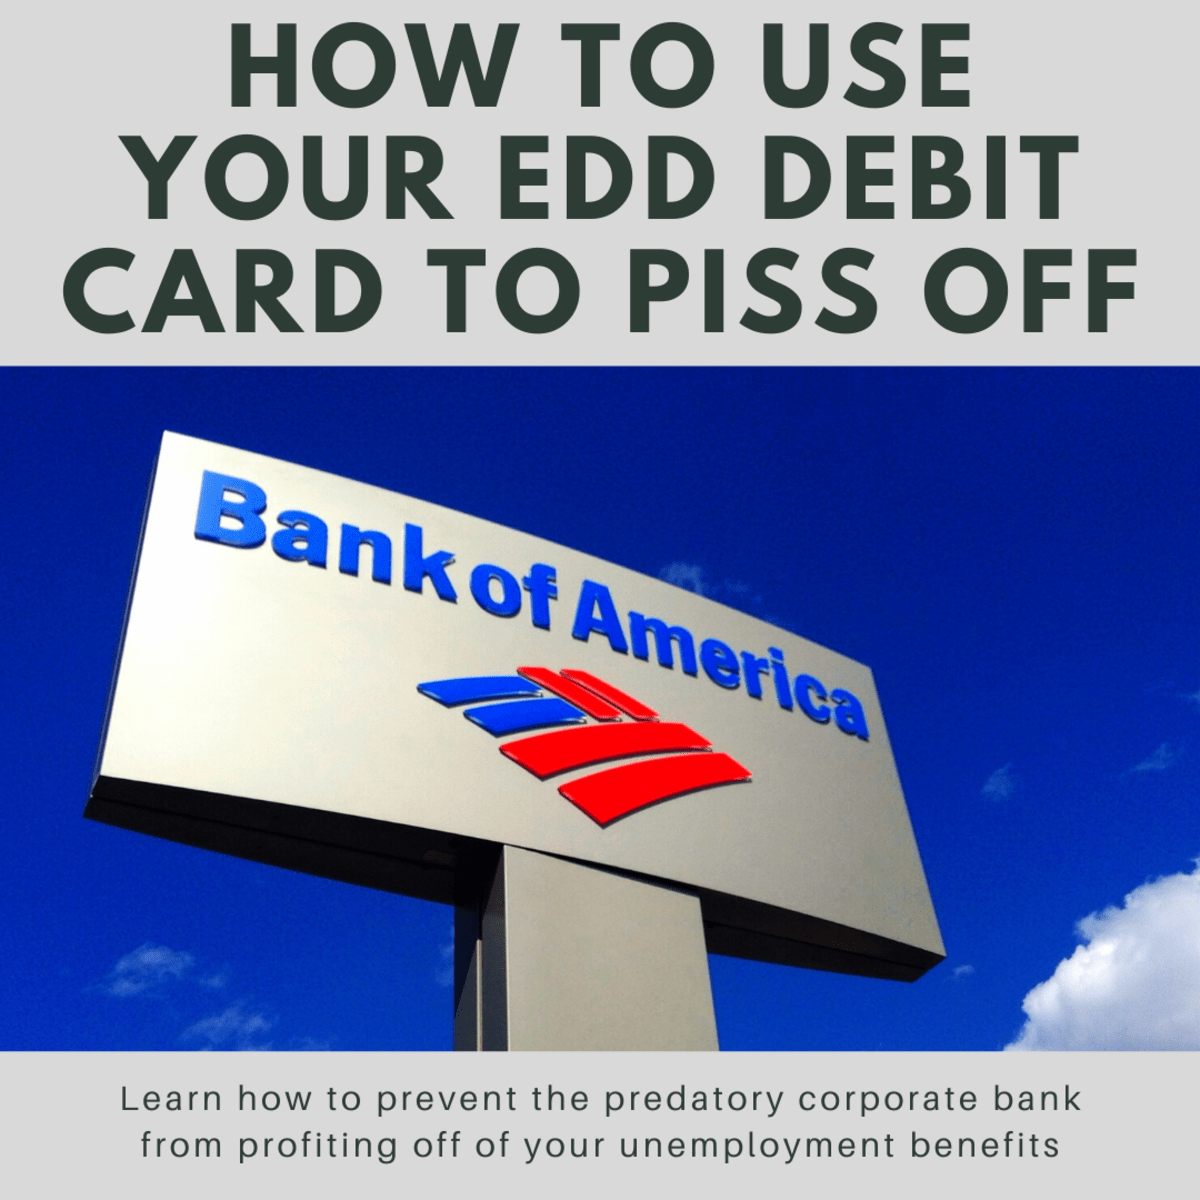 How To Use Your Edd Debit Card To Piss Off Bank Of America Soapboxie Politics